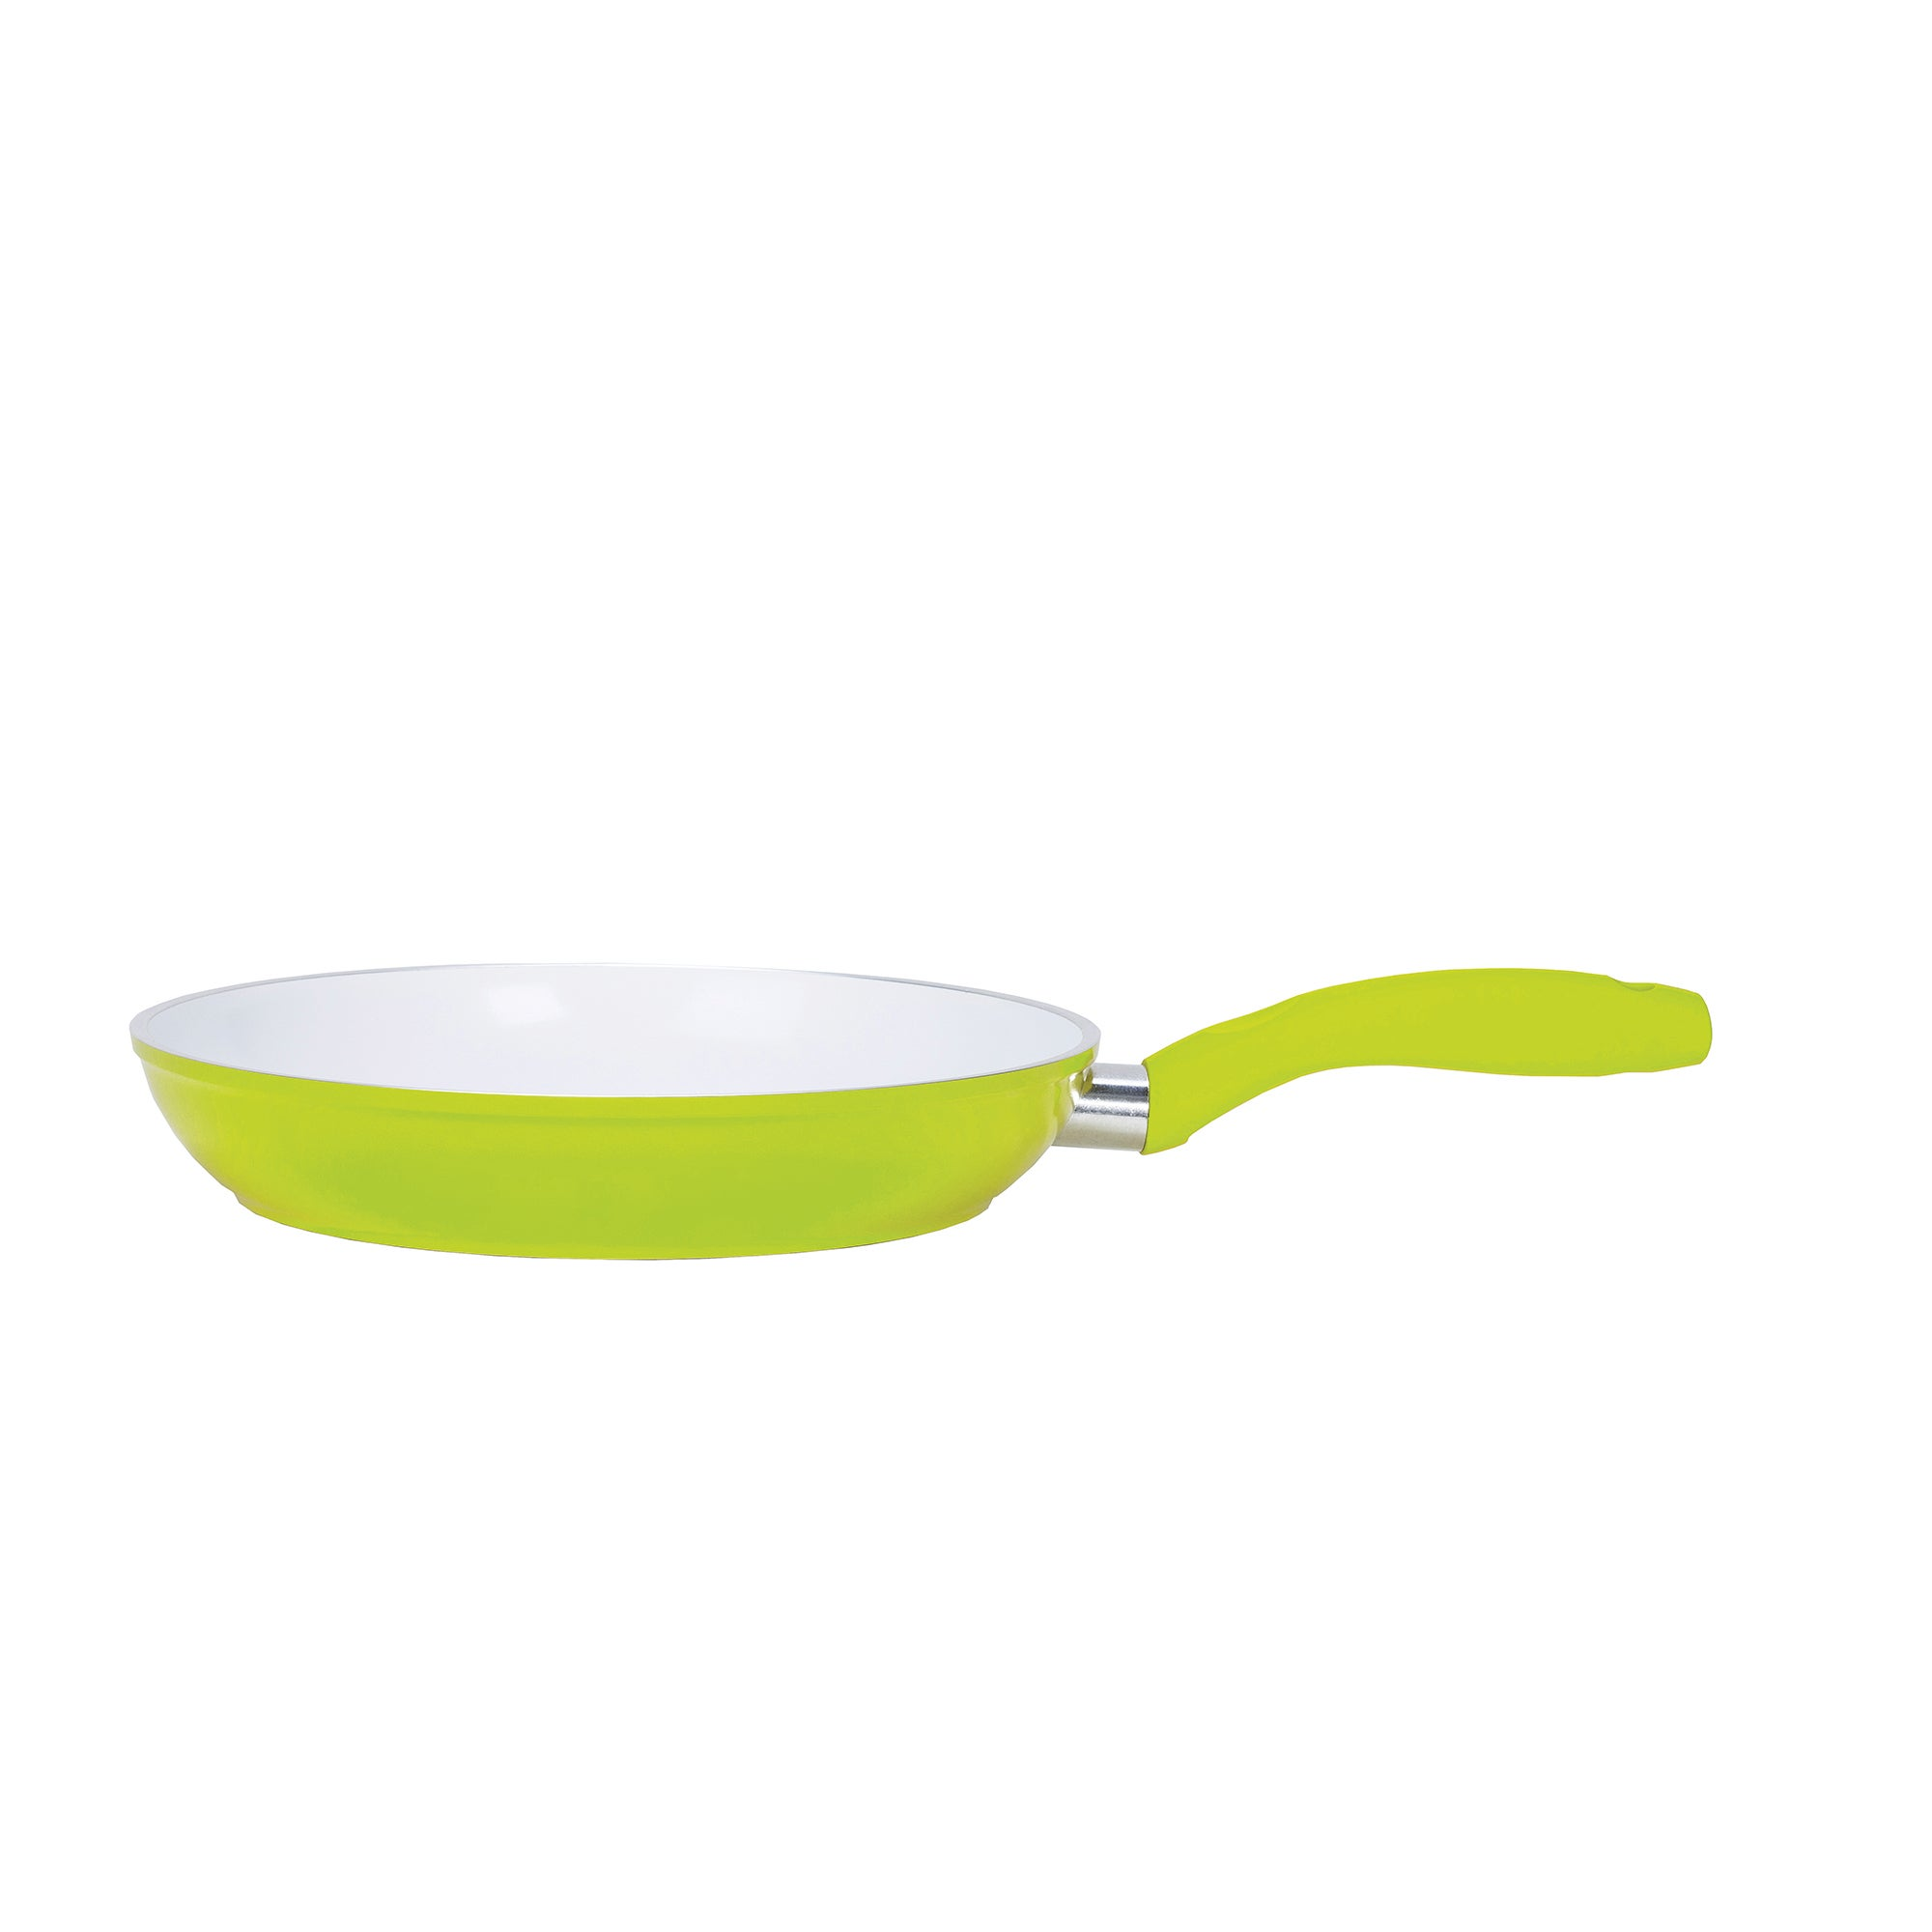 JML Ceracraft 24cm Green Frying Pan